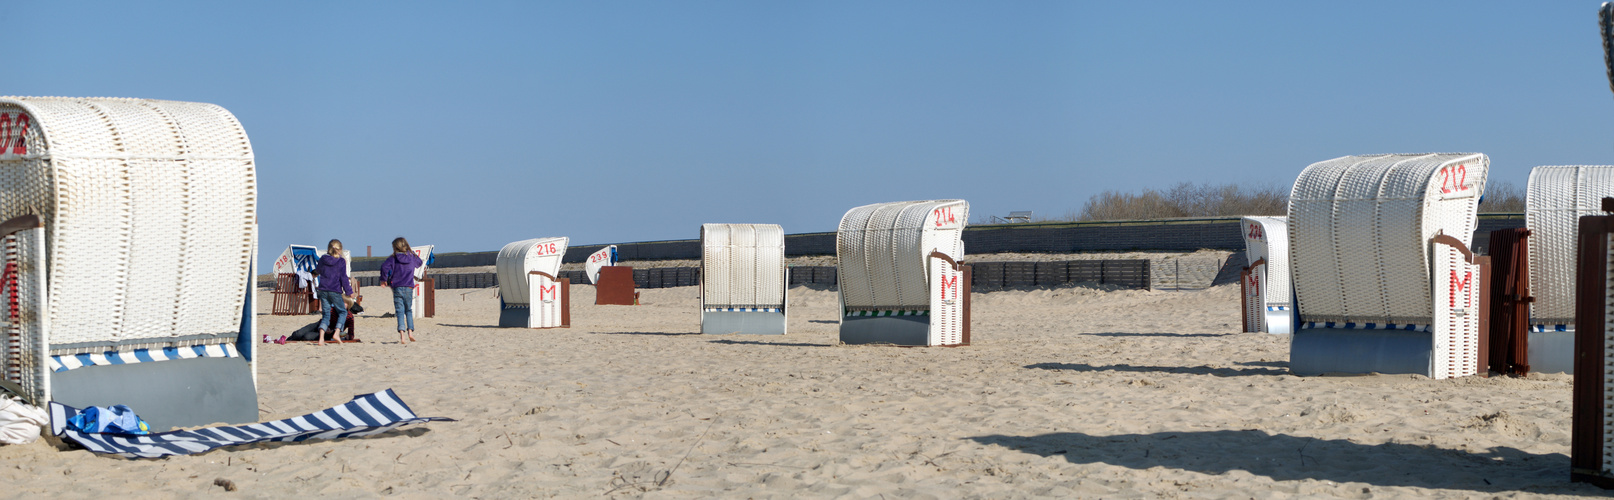 Strand Panorama Cuxhaven